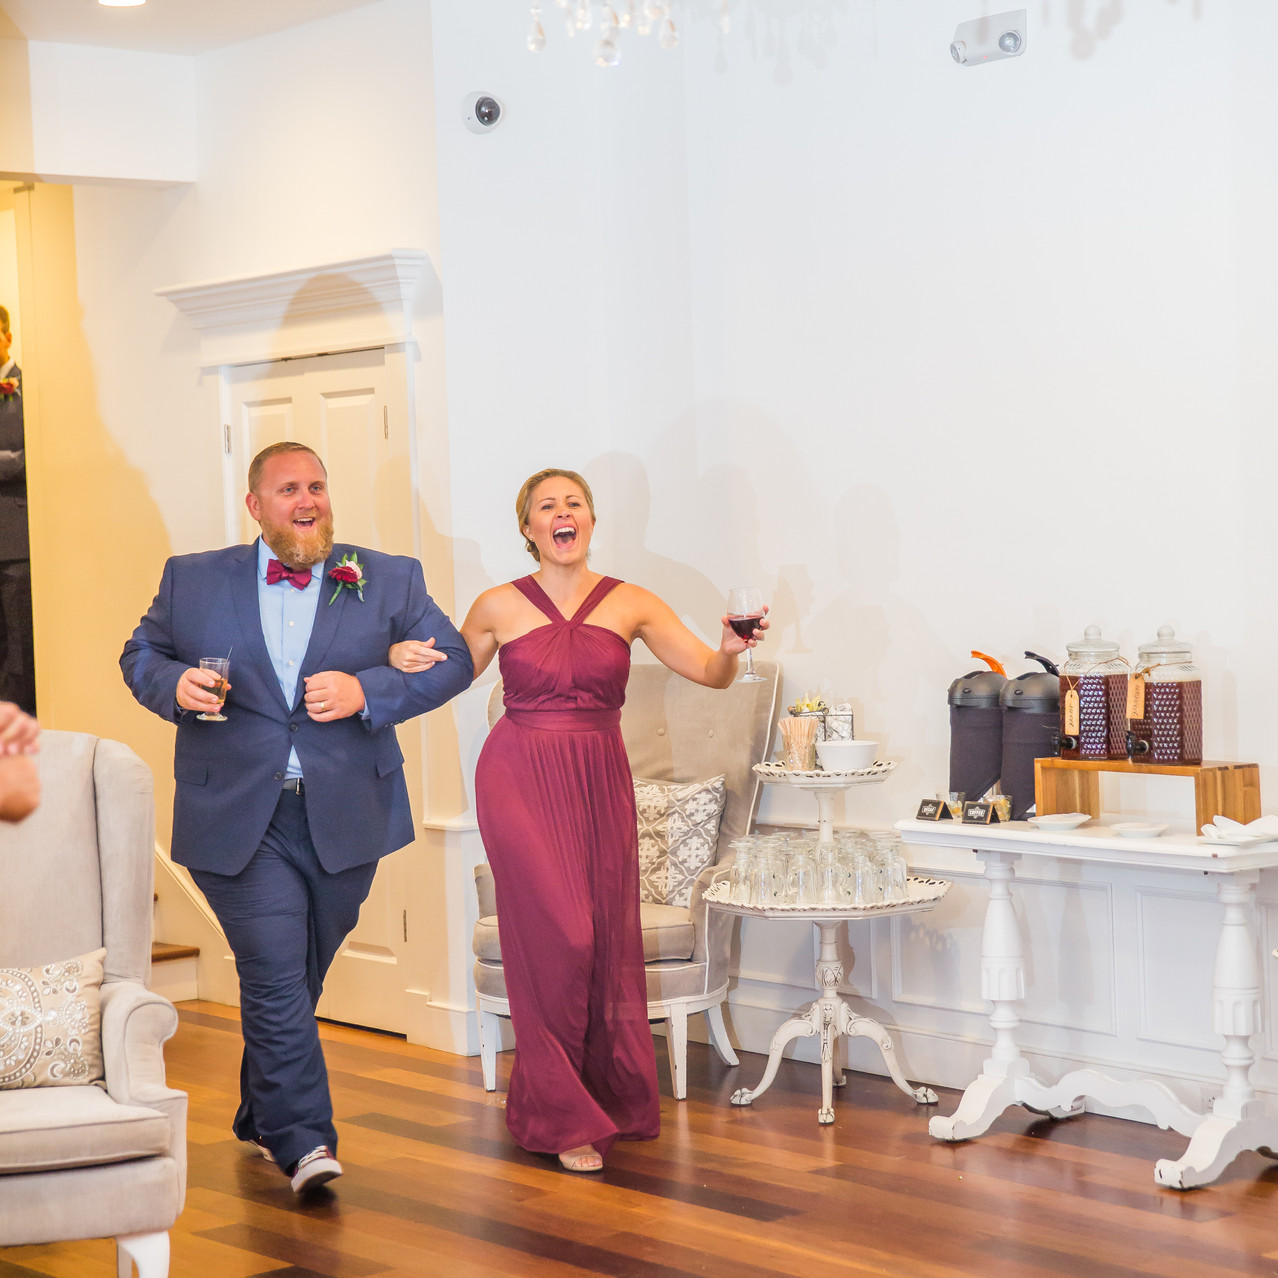 7-8-2018_Brittany + Eric-R-18